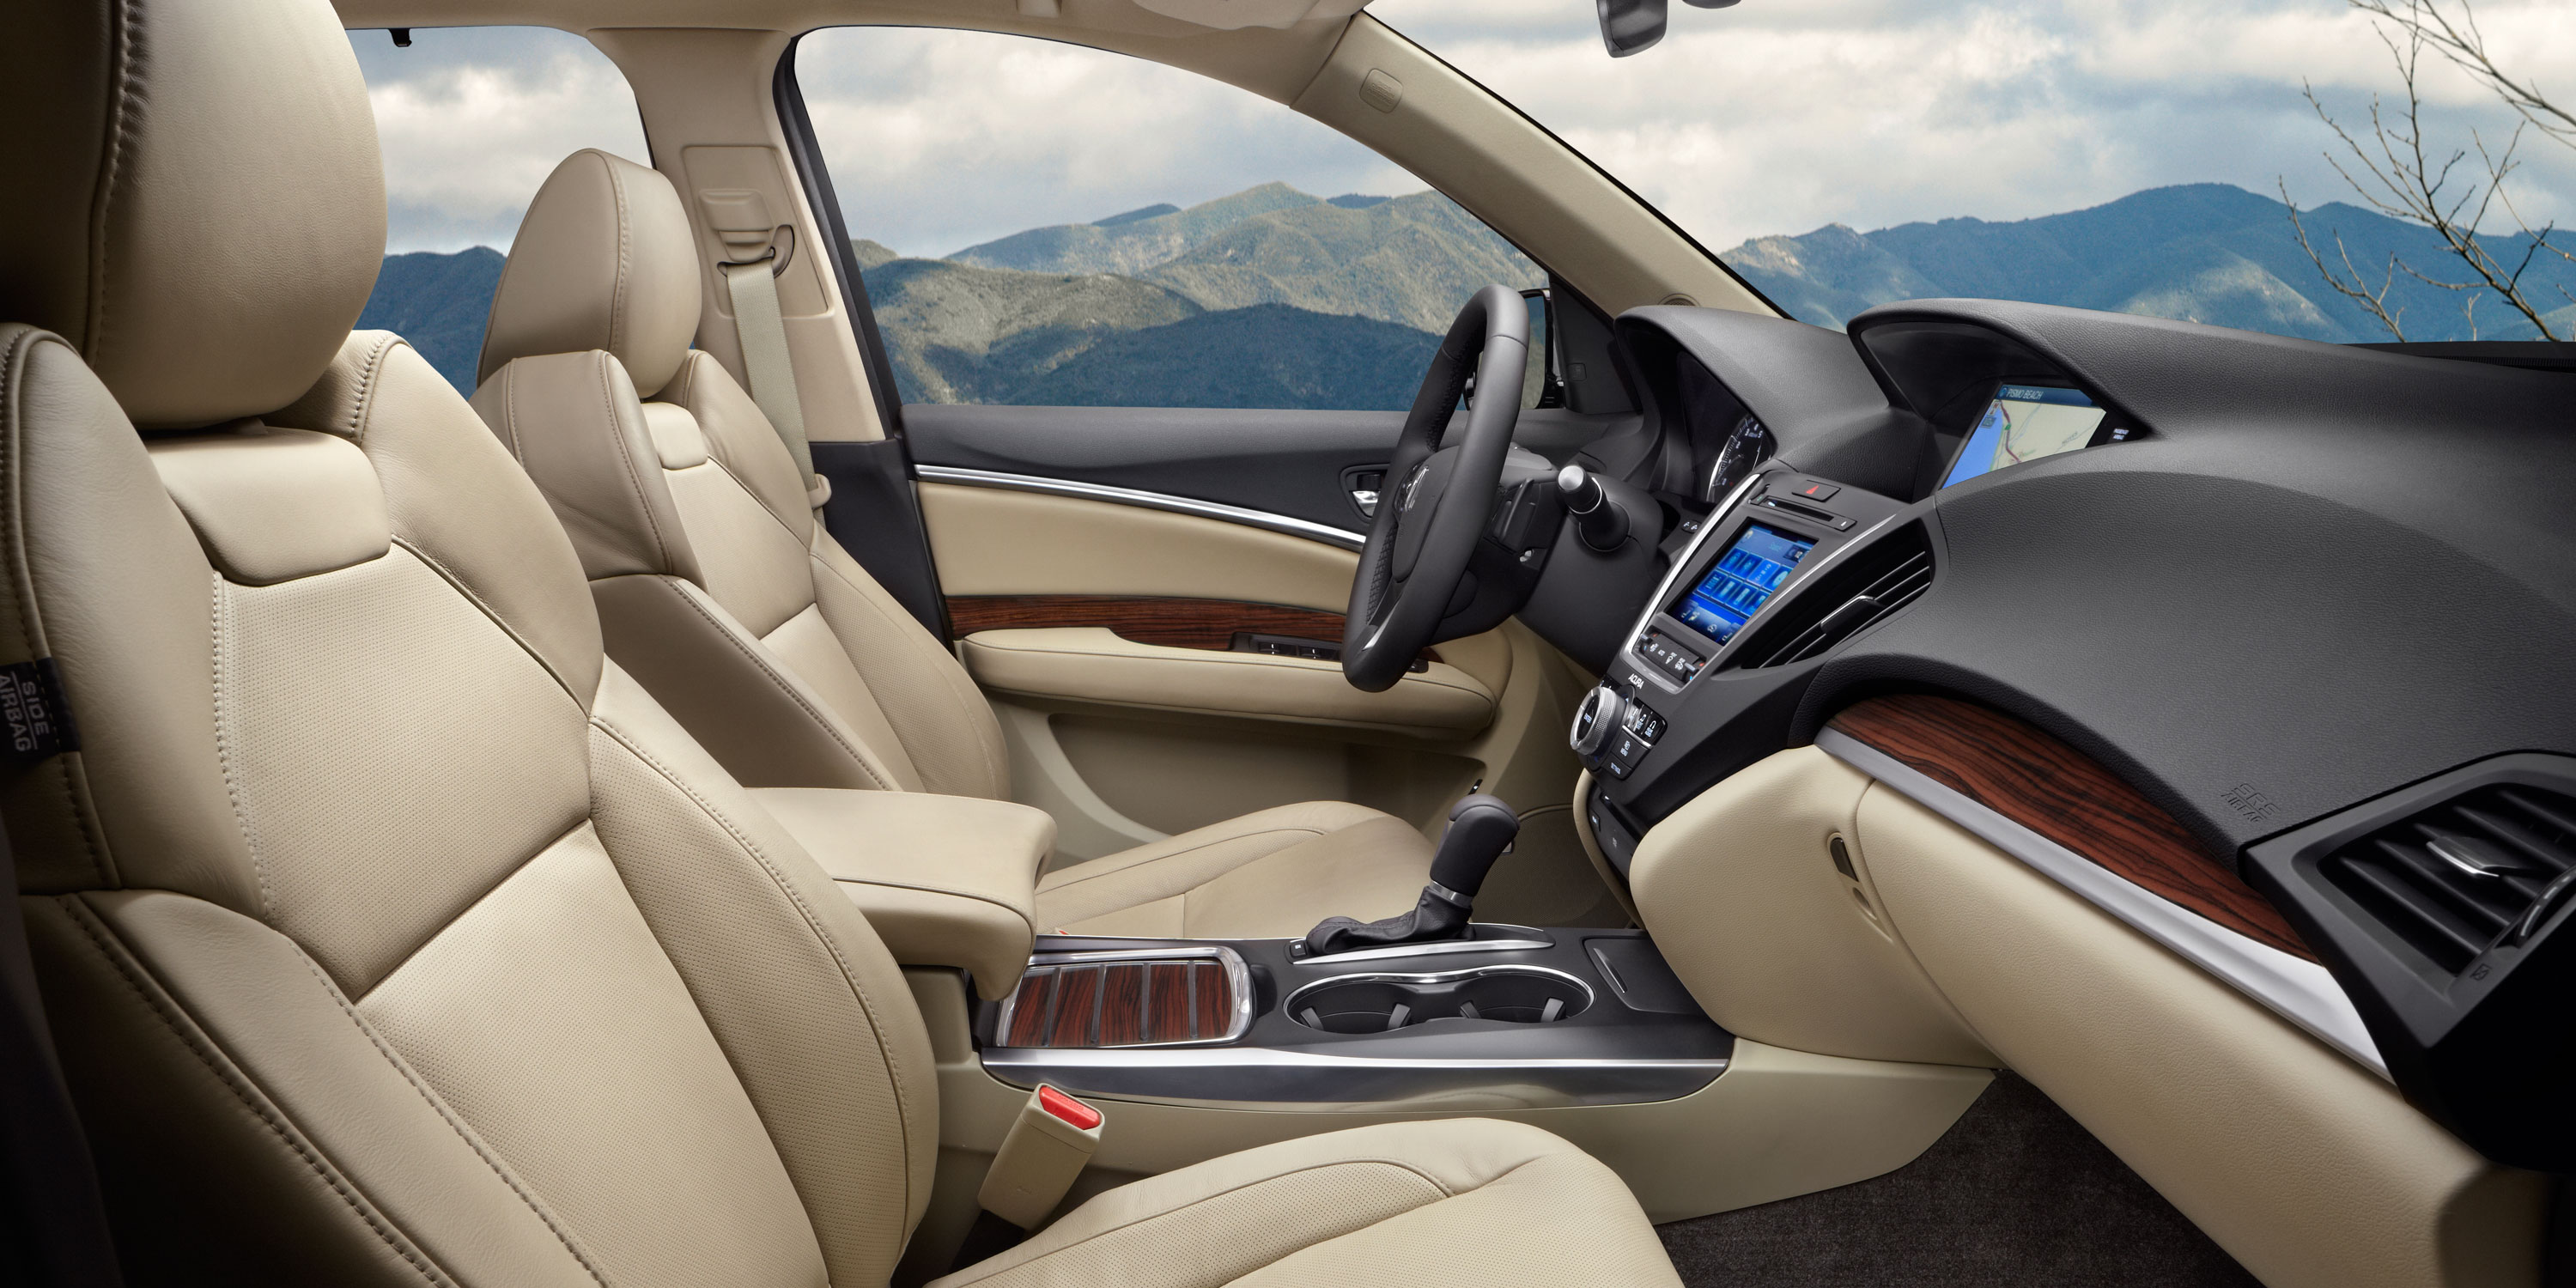 2016 acura mdx reviews photos video specs price images and pictures. Black Bedroom Furniture Sets. Home Design Ideas